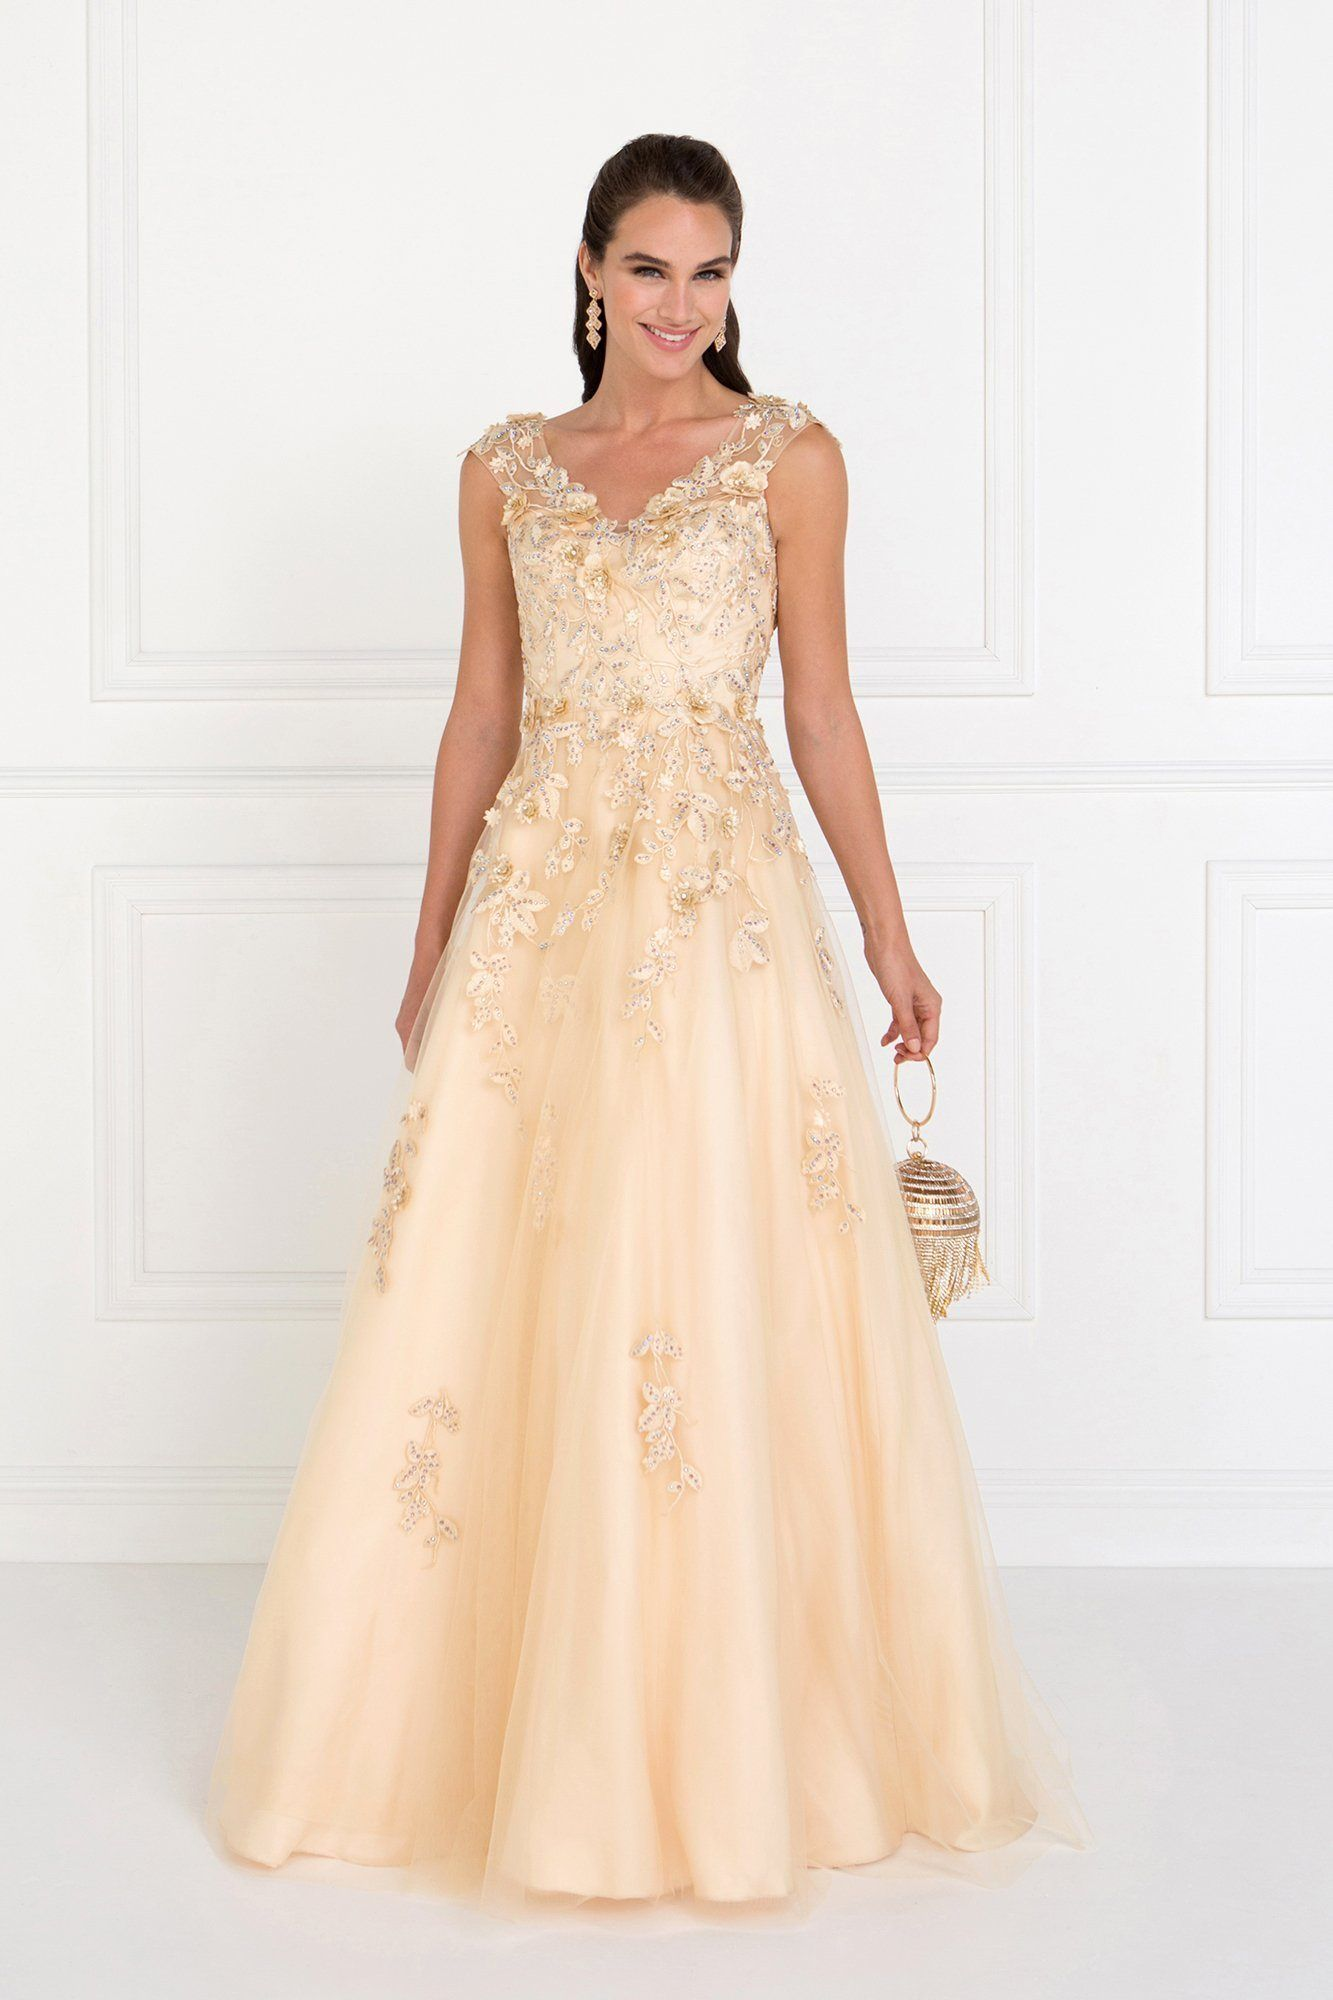 Elegant ball gown dress gls products pinterest ball gown